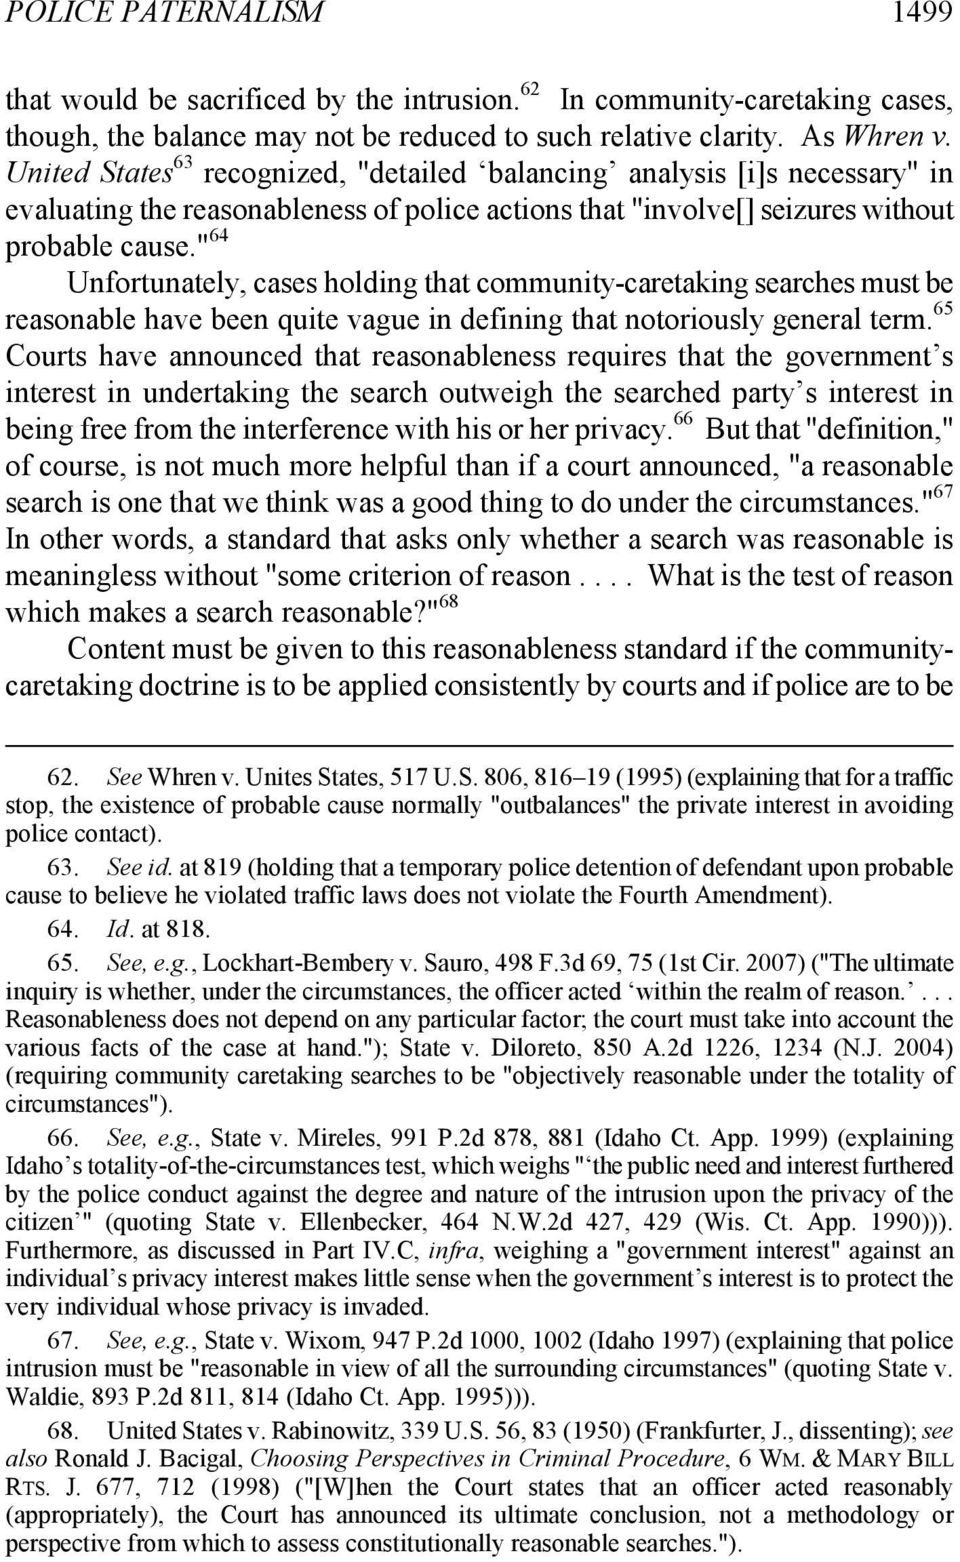 """ 64 Unfortunately, cases holding that community-caretaking searches must be reasonable have been quite vague in defining that notoriously general term."